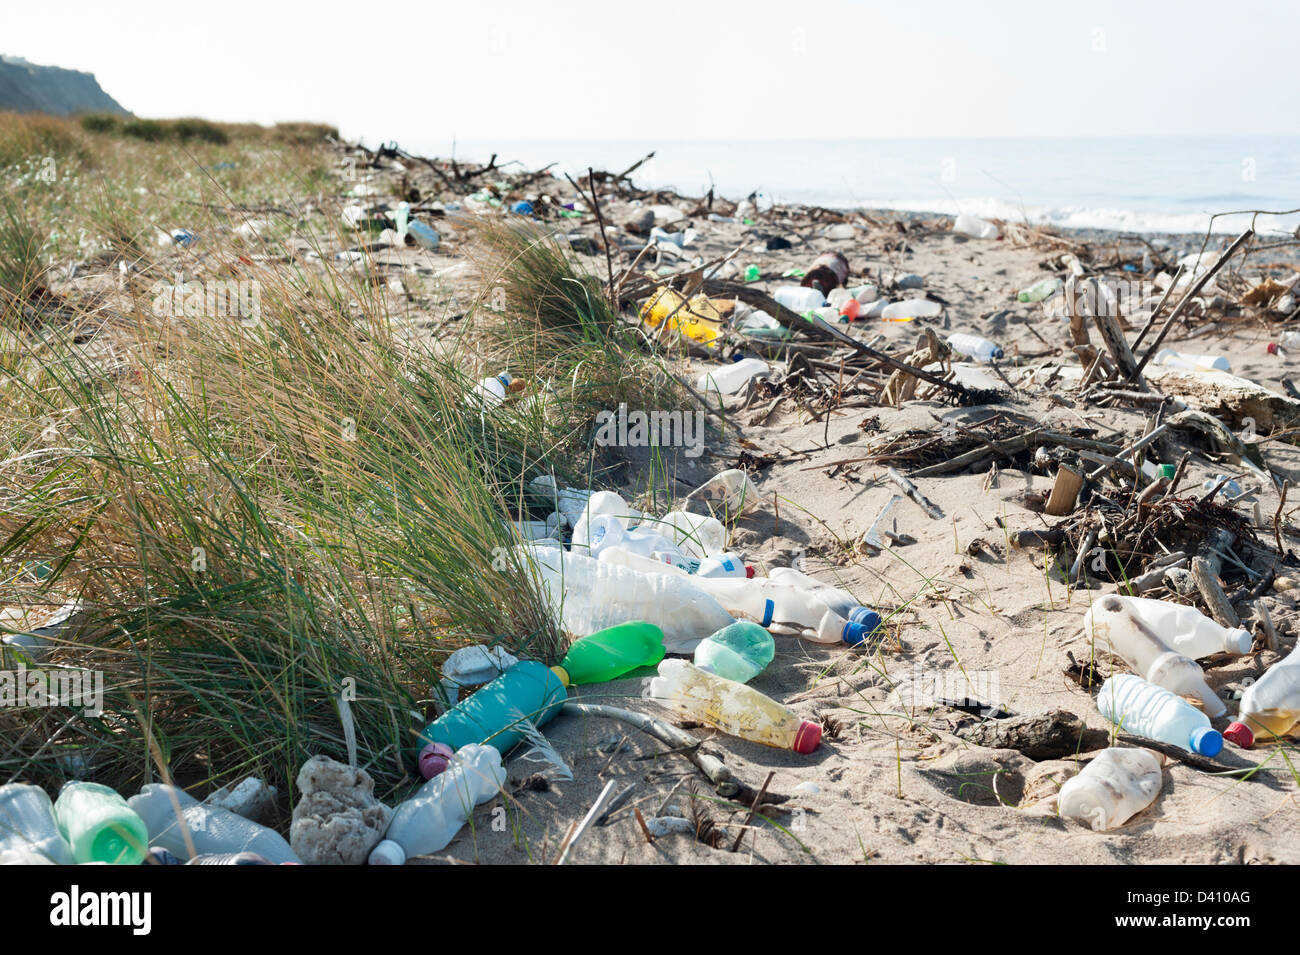 Plastic bottles and other rubbish and waste washed up on a dirty British beach - Stock Image